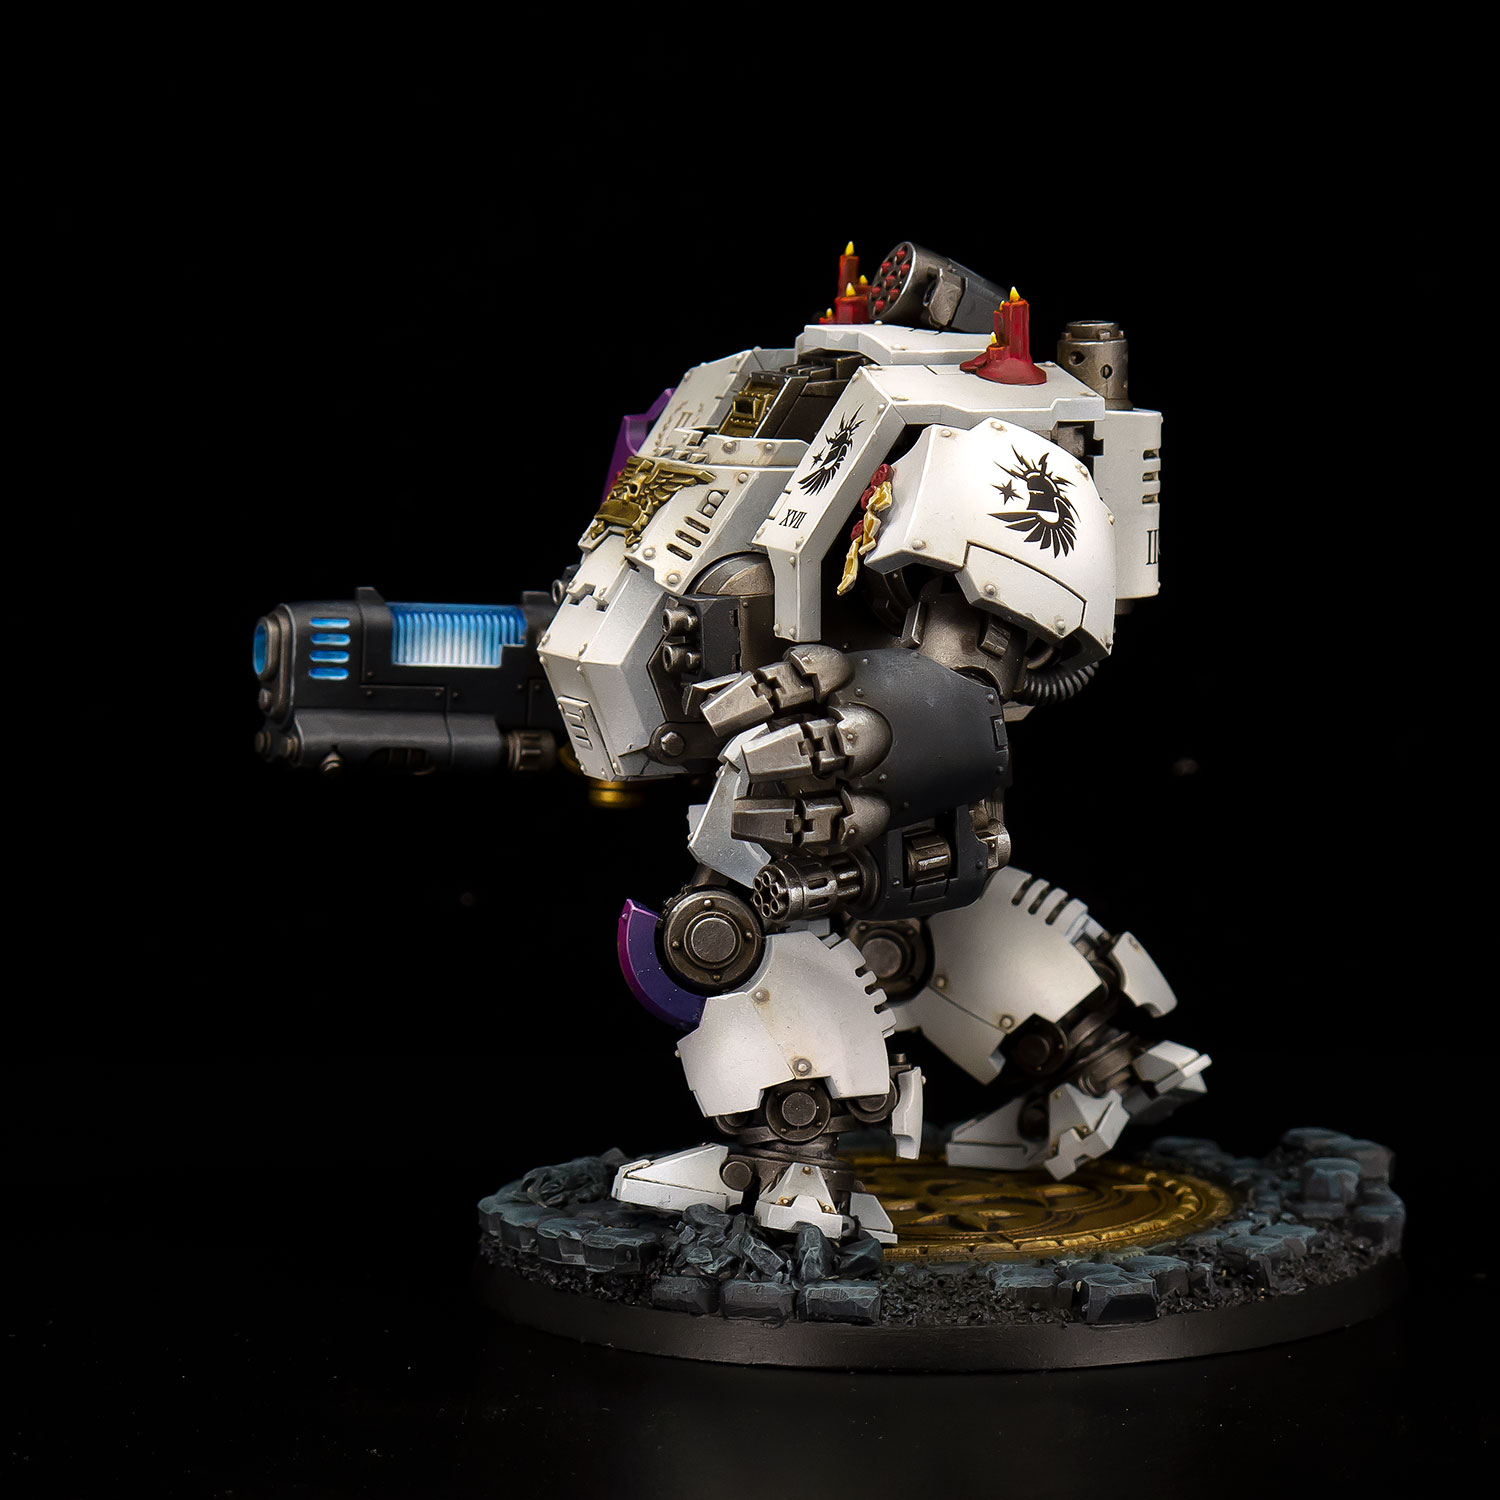 Sons of the Phoenix Redemptor Dreadnought for Emerson - The